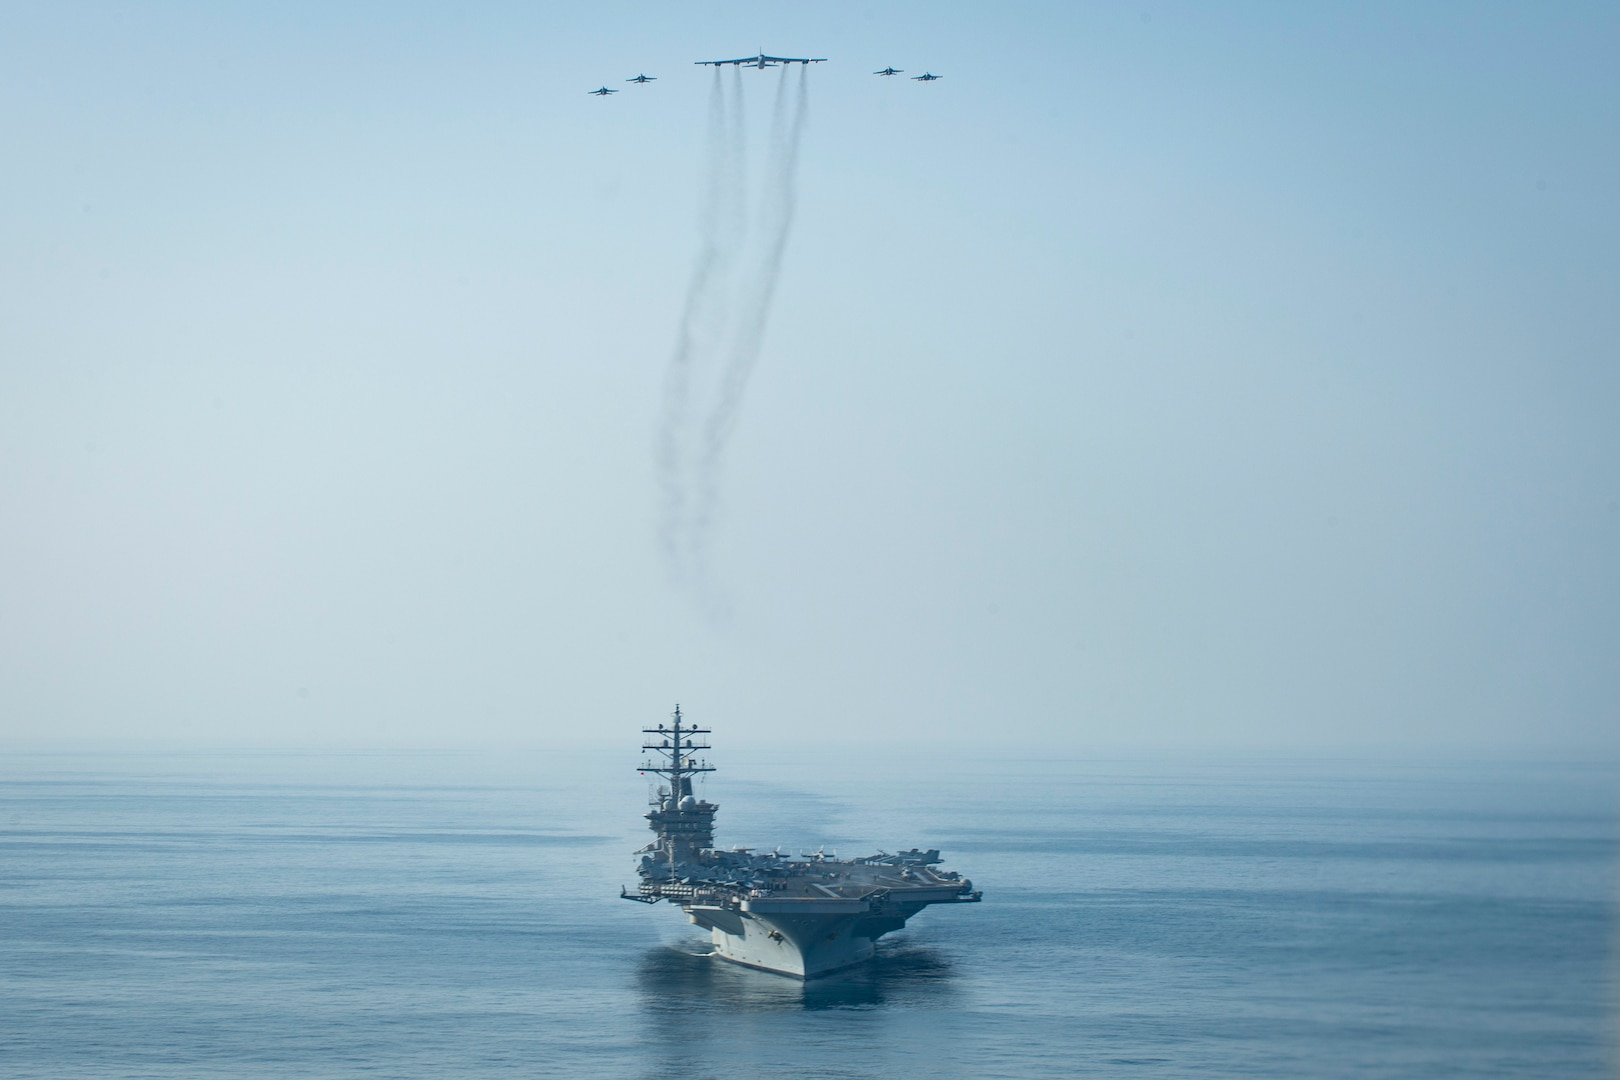 The aircraft carrier USS Dwight D. Eisenhower (CVN 69) conducts a combined air wing operation with a B-52 Bomber from U.S. Air Forces Central Command in the Arabian Sea, March 18, 2020. Ike is deployed to the U.S. 5th Fleet area of operations in support of naval operations to ensure maritime stability and security in the Central Region, connecting the Mediterranean and Pacific through the Western Indian Ocean and three strategic choke points.